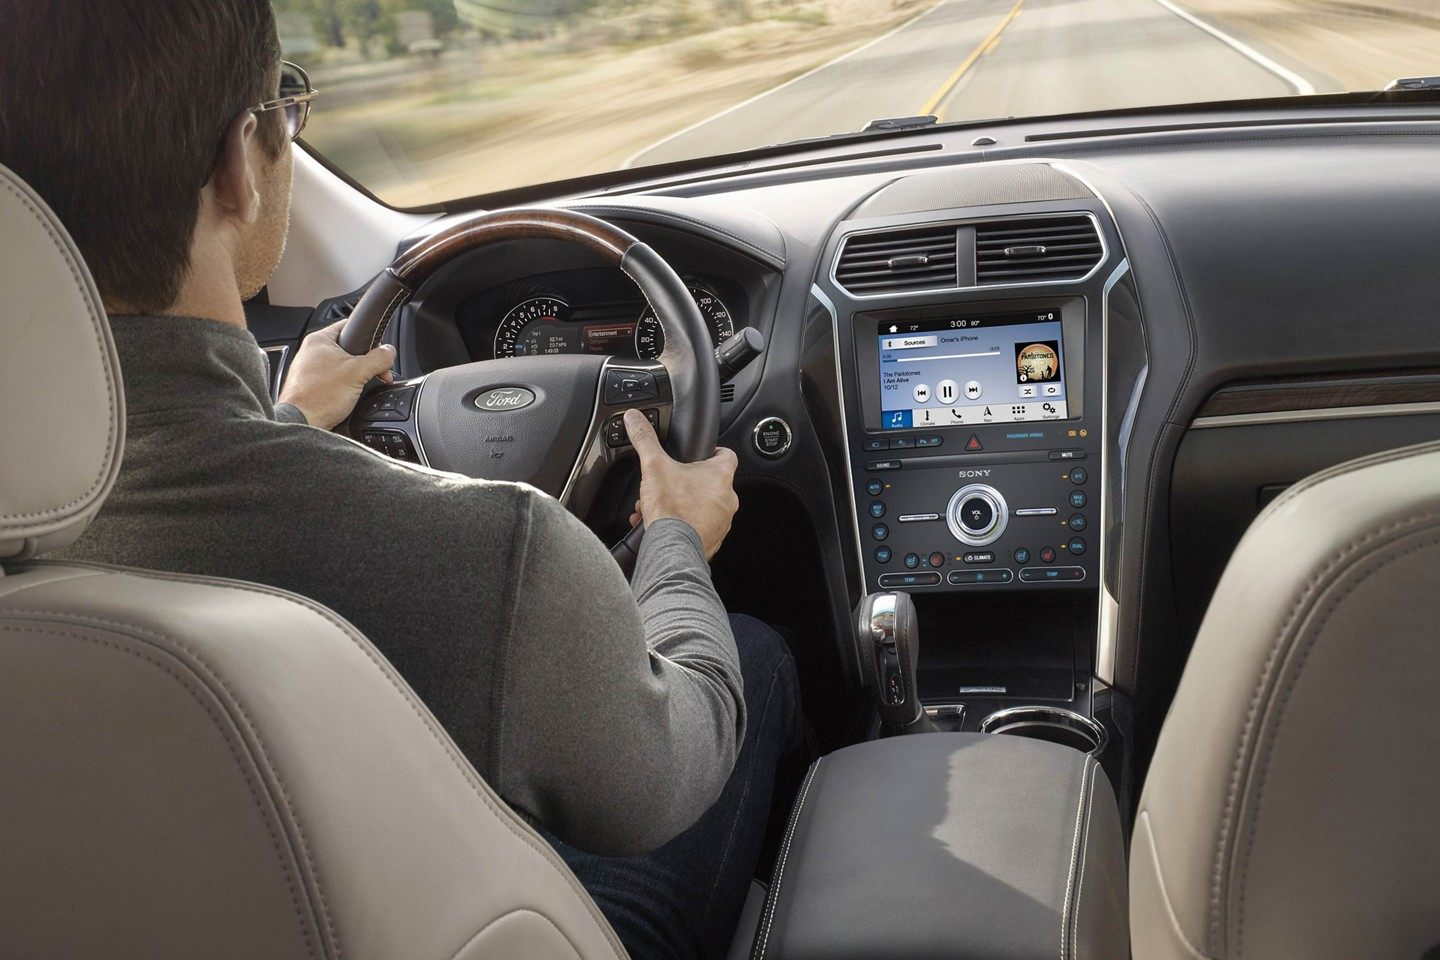 2019 Ford Explorer Technology Features